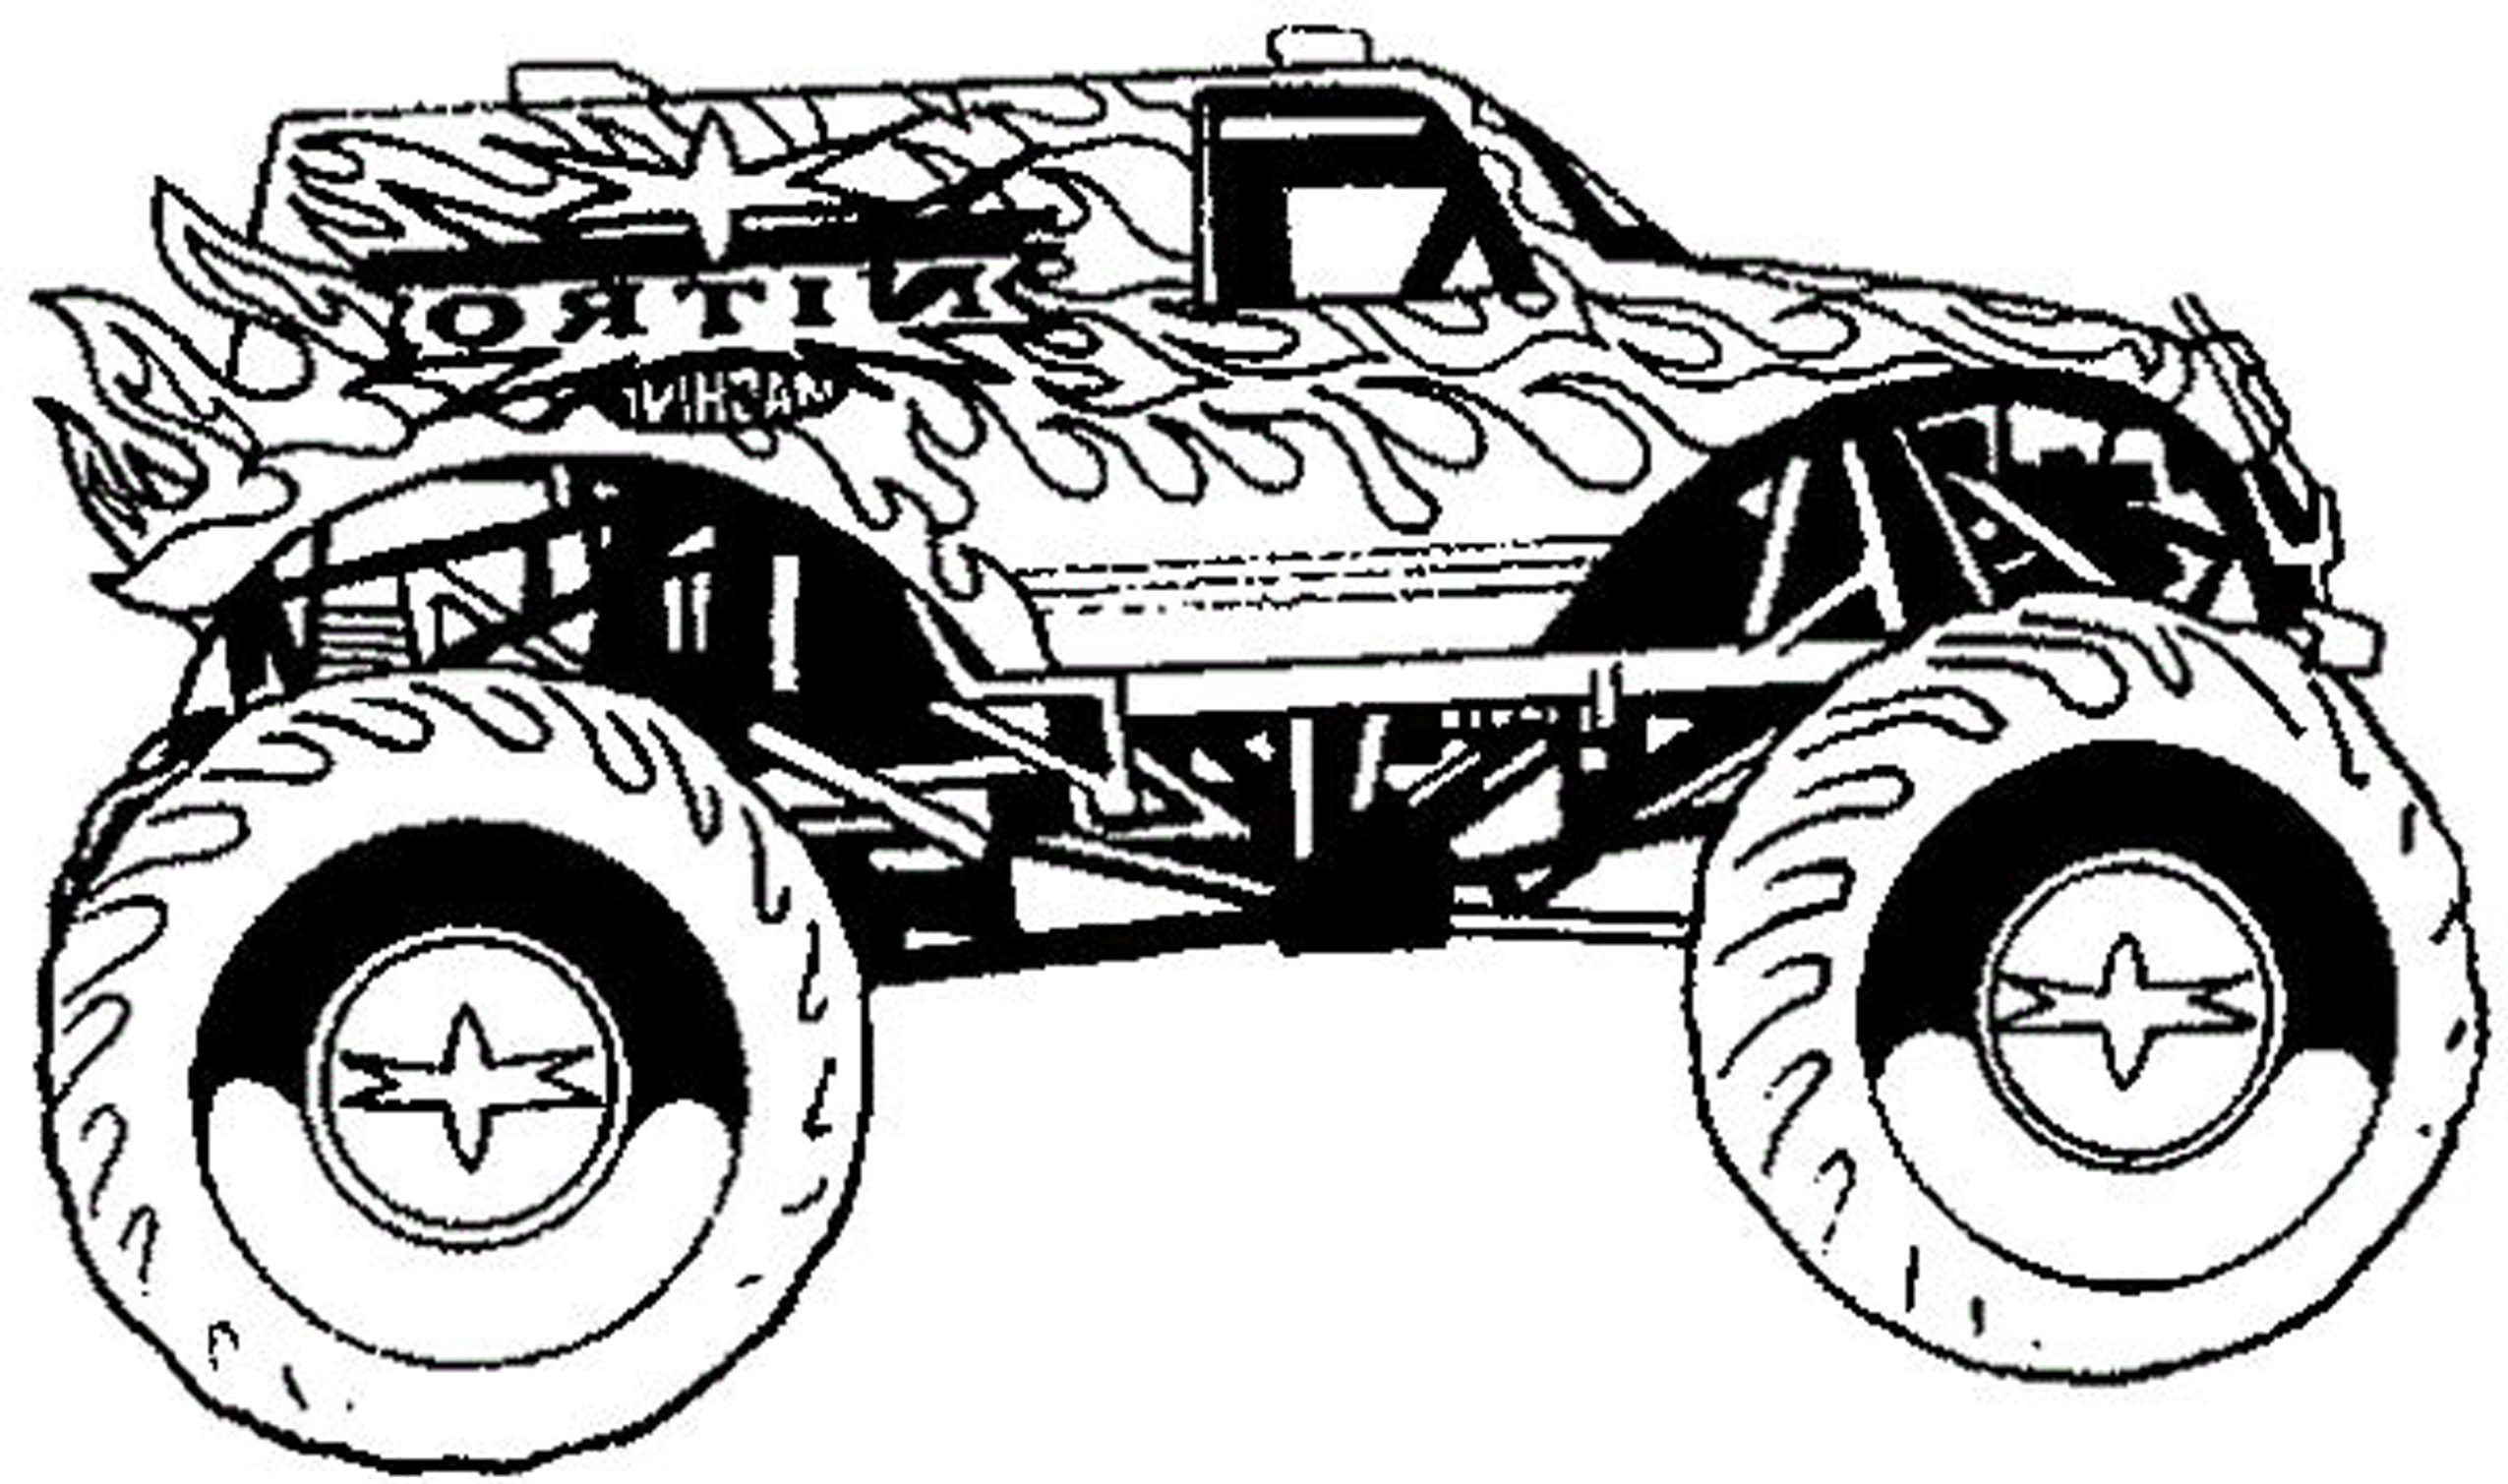 Pre K Big Truck Coloring Pages For Girls  Cool Coloring Pages For Boys Monster Truck Have Coloring